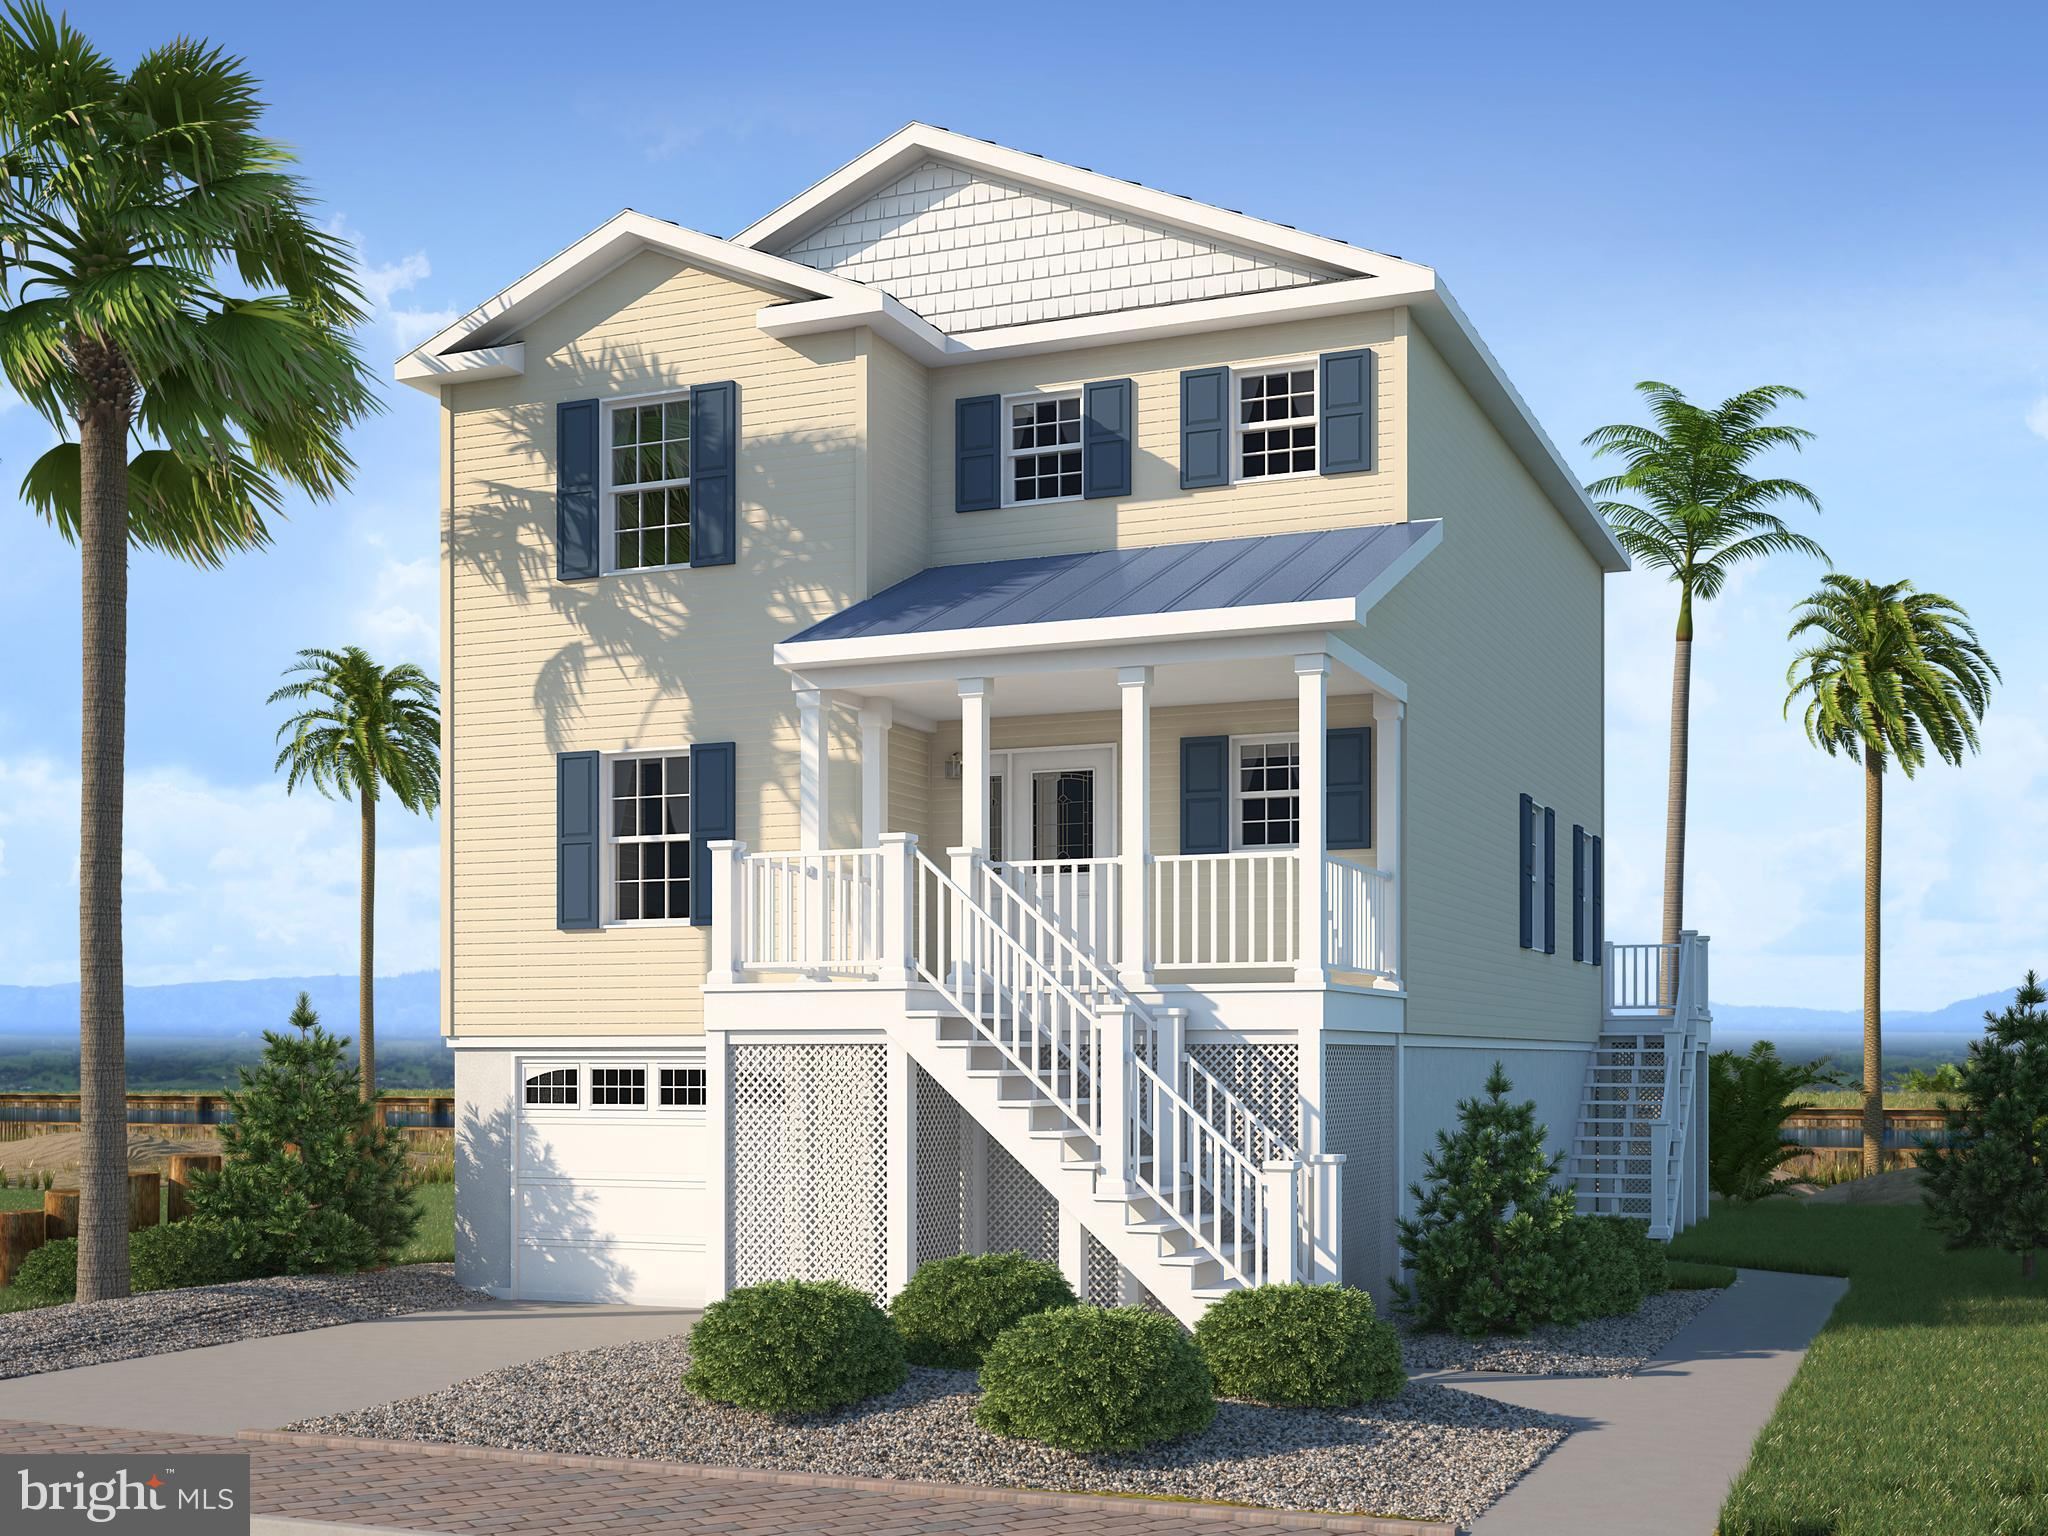 Great opportunity  to own a NEW home on the water for an amazing price. Deep water canal with access